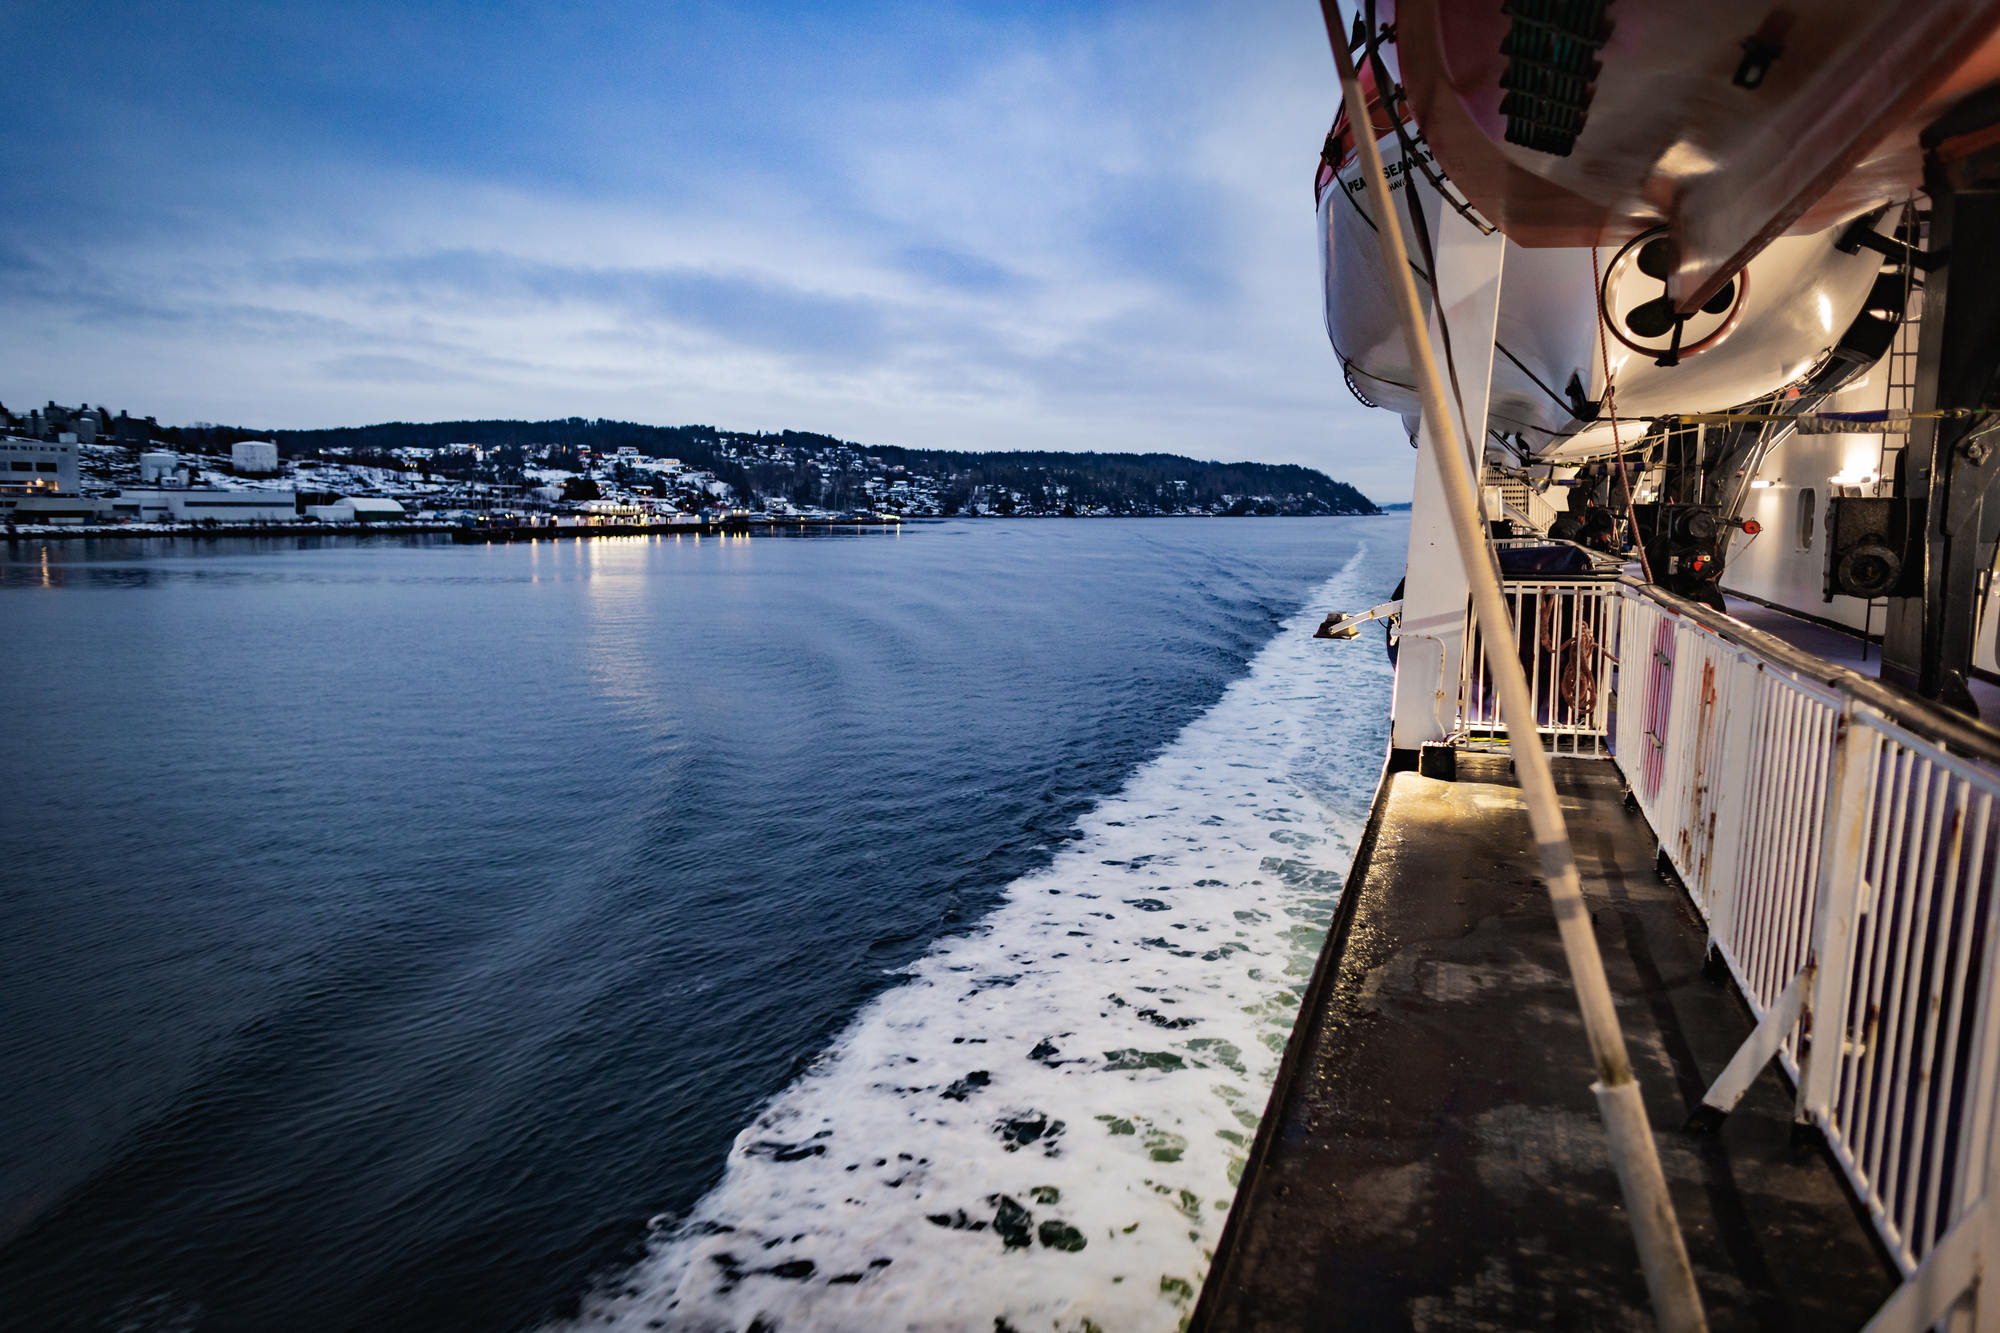 dfds-minicruise-oslo-christmas-time-travel-photography-09